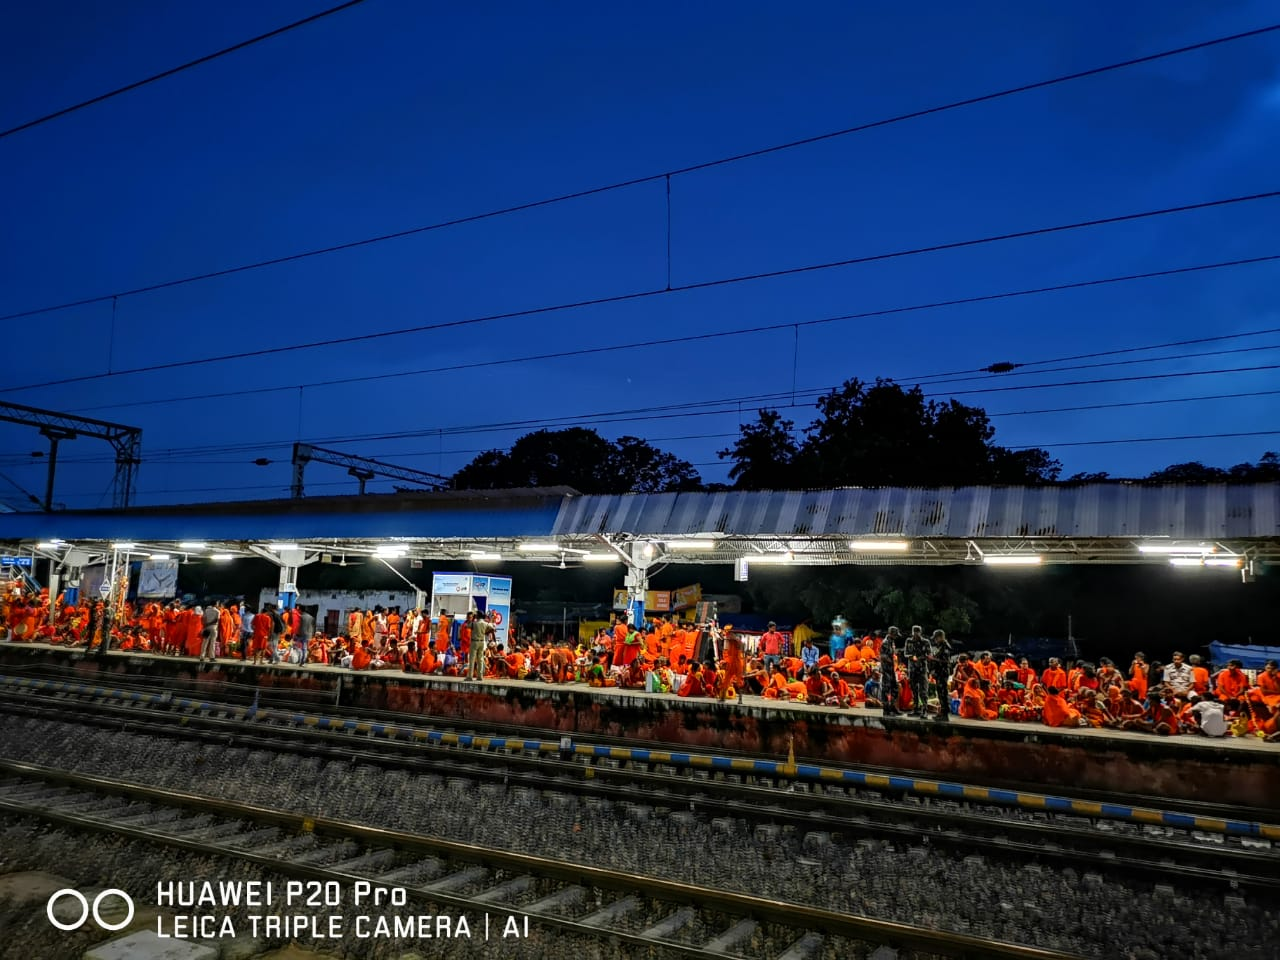 <p>Jasidih railway station platform turns saffron on the occasion of month-long Shravani Mela at Deoghar, Jharkhand.</p>